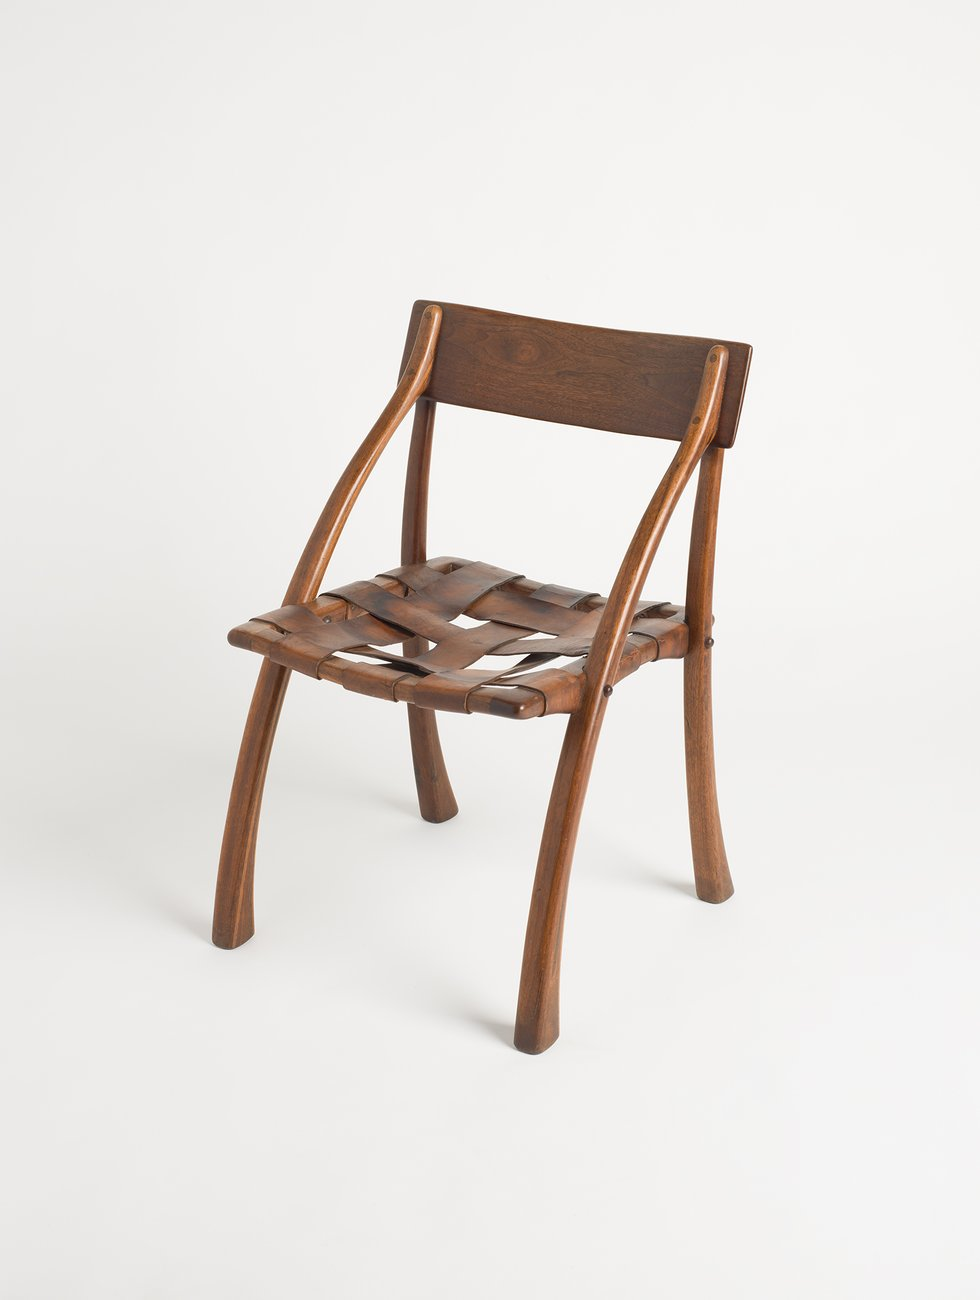 ​Arthur Espenet Carpenter, Wishbone chair, 1970